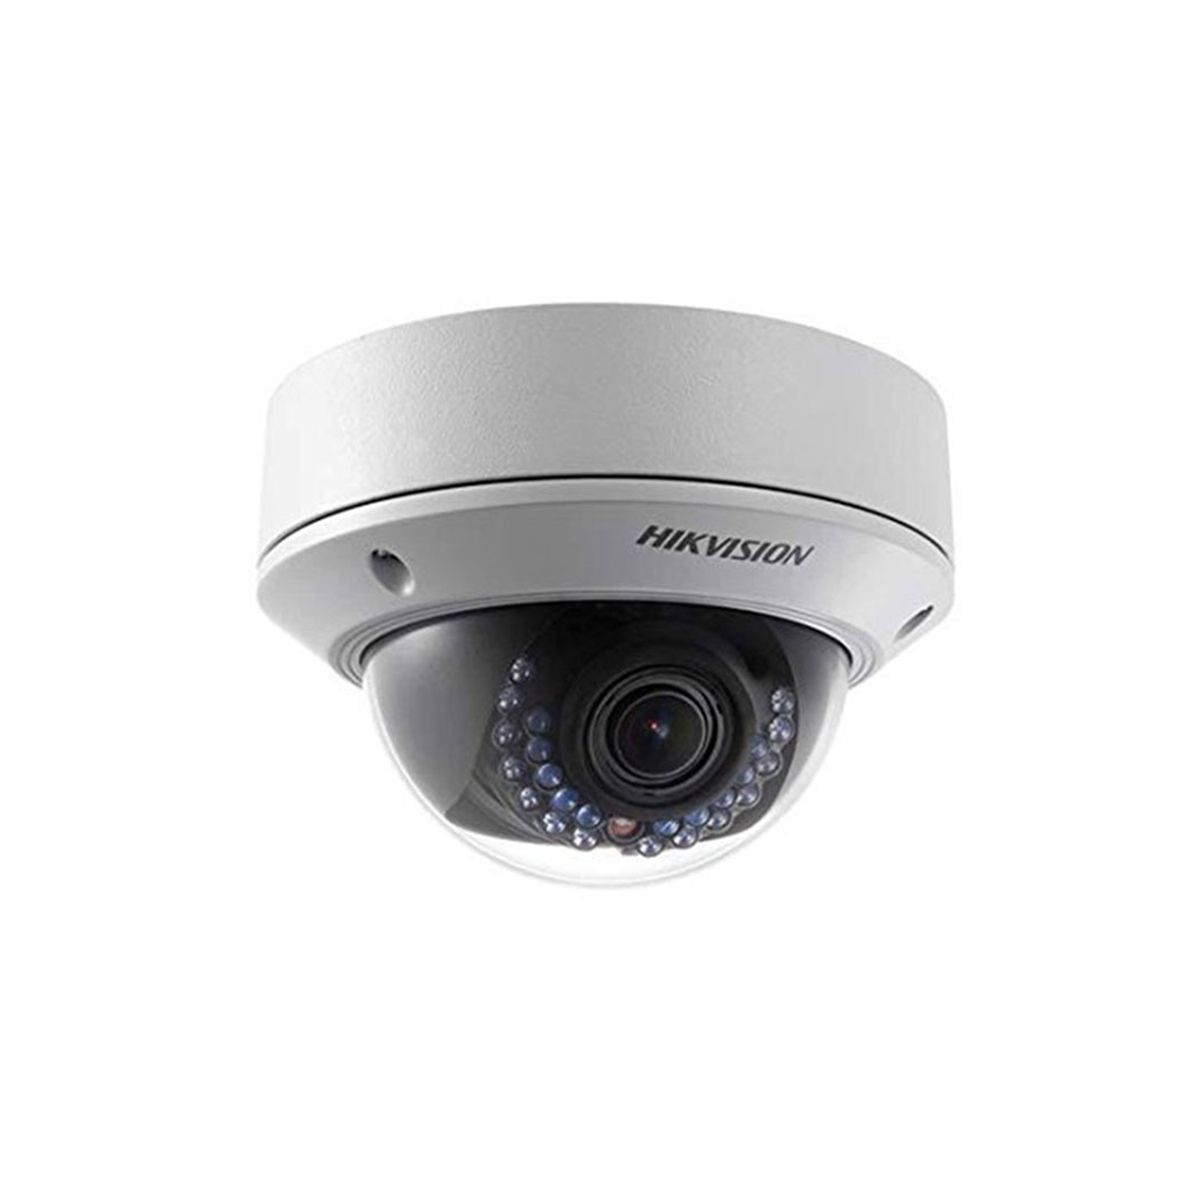 Cámara Hikvision Turbo HD Tipo Domo 5MP varifocal DS-2CE56H1T-(A)ITZ